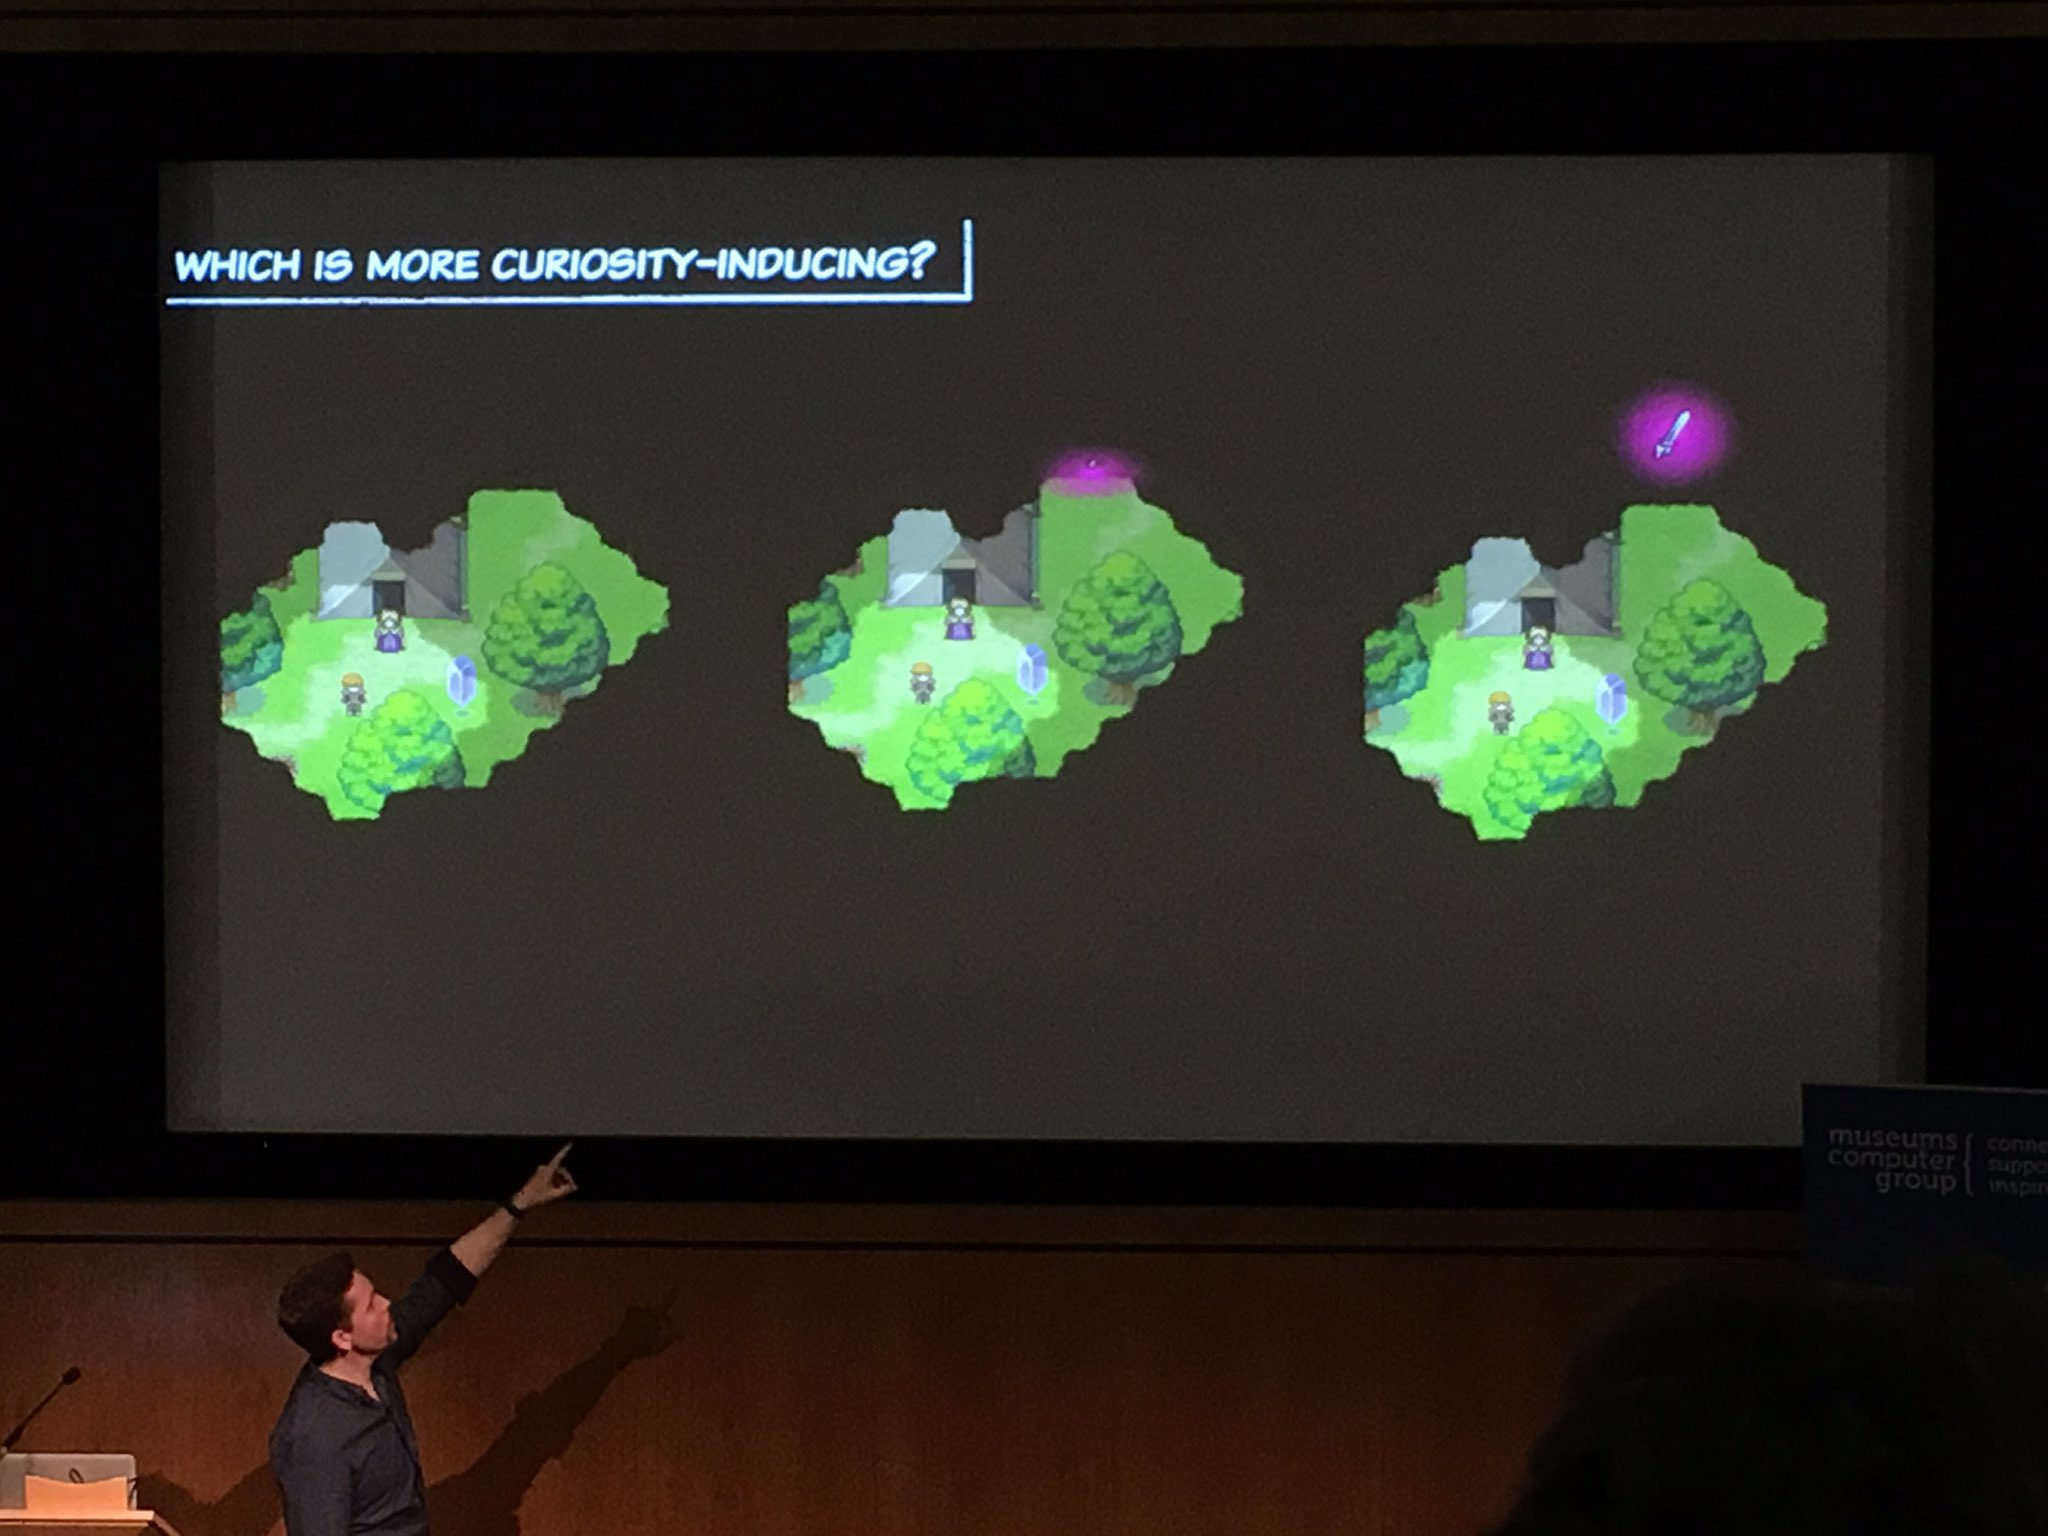 More lessons from games. Which scenario provokes more curiosity? B teases without giving too much away. #musetech16 https://t.co/zQ9qKPi5q2